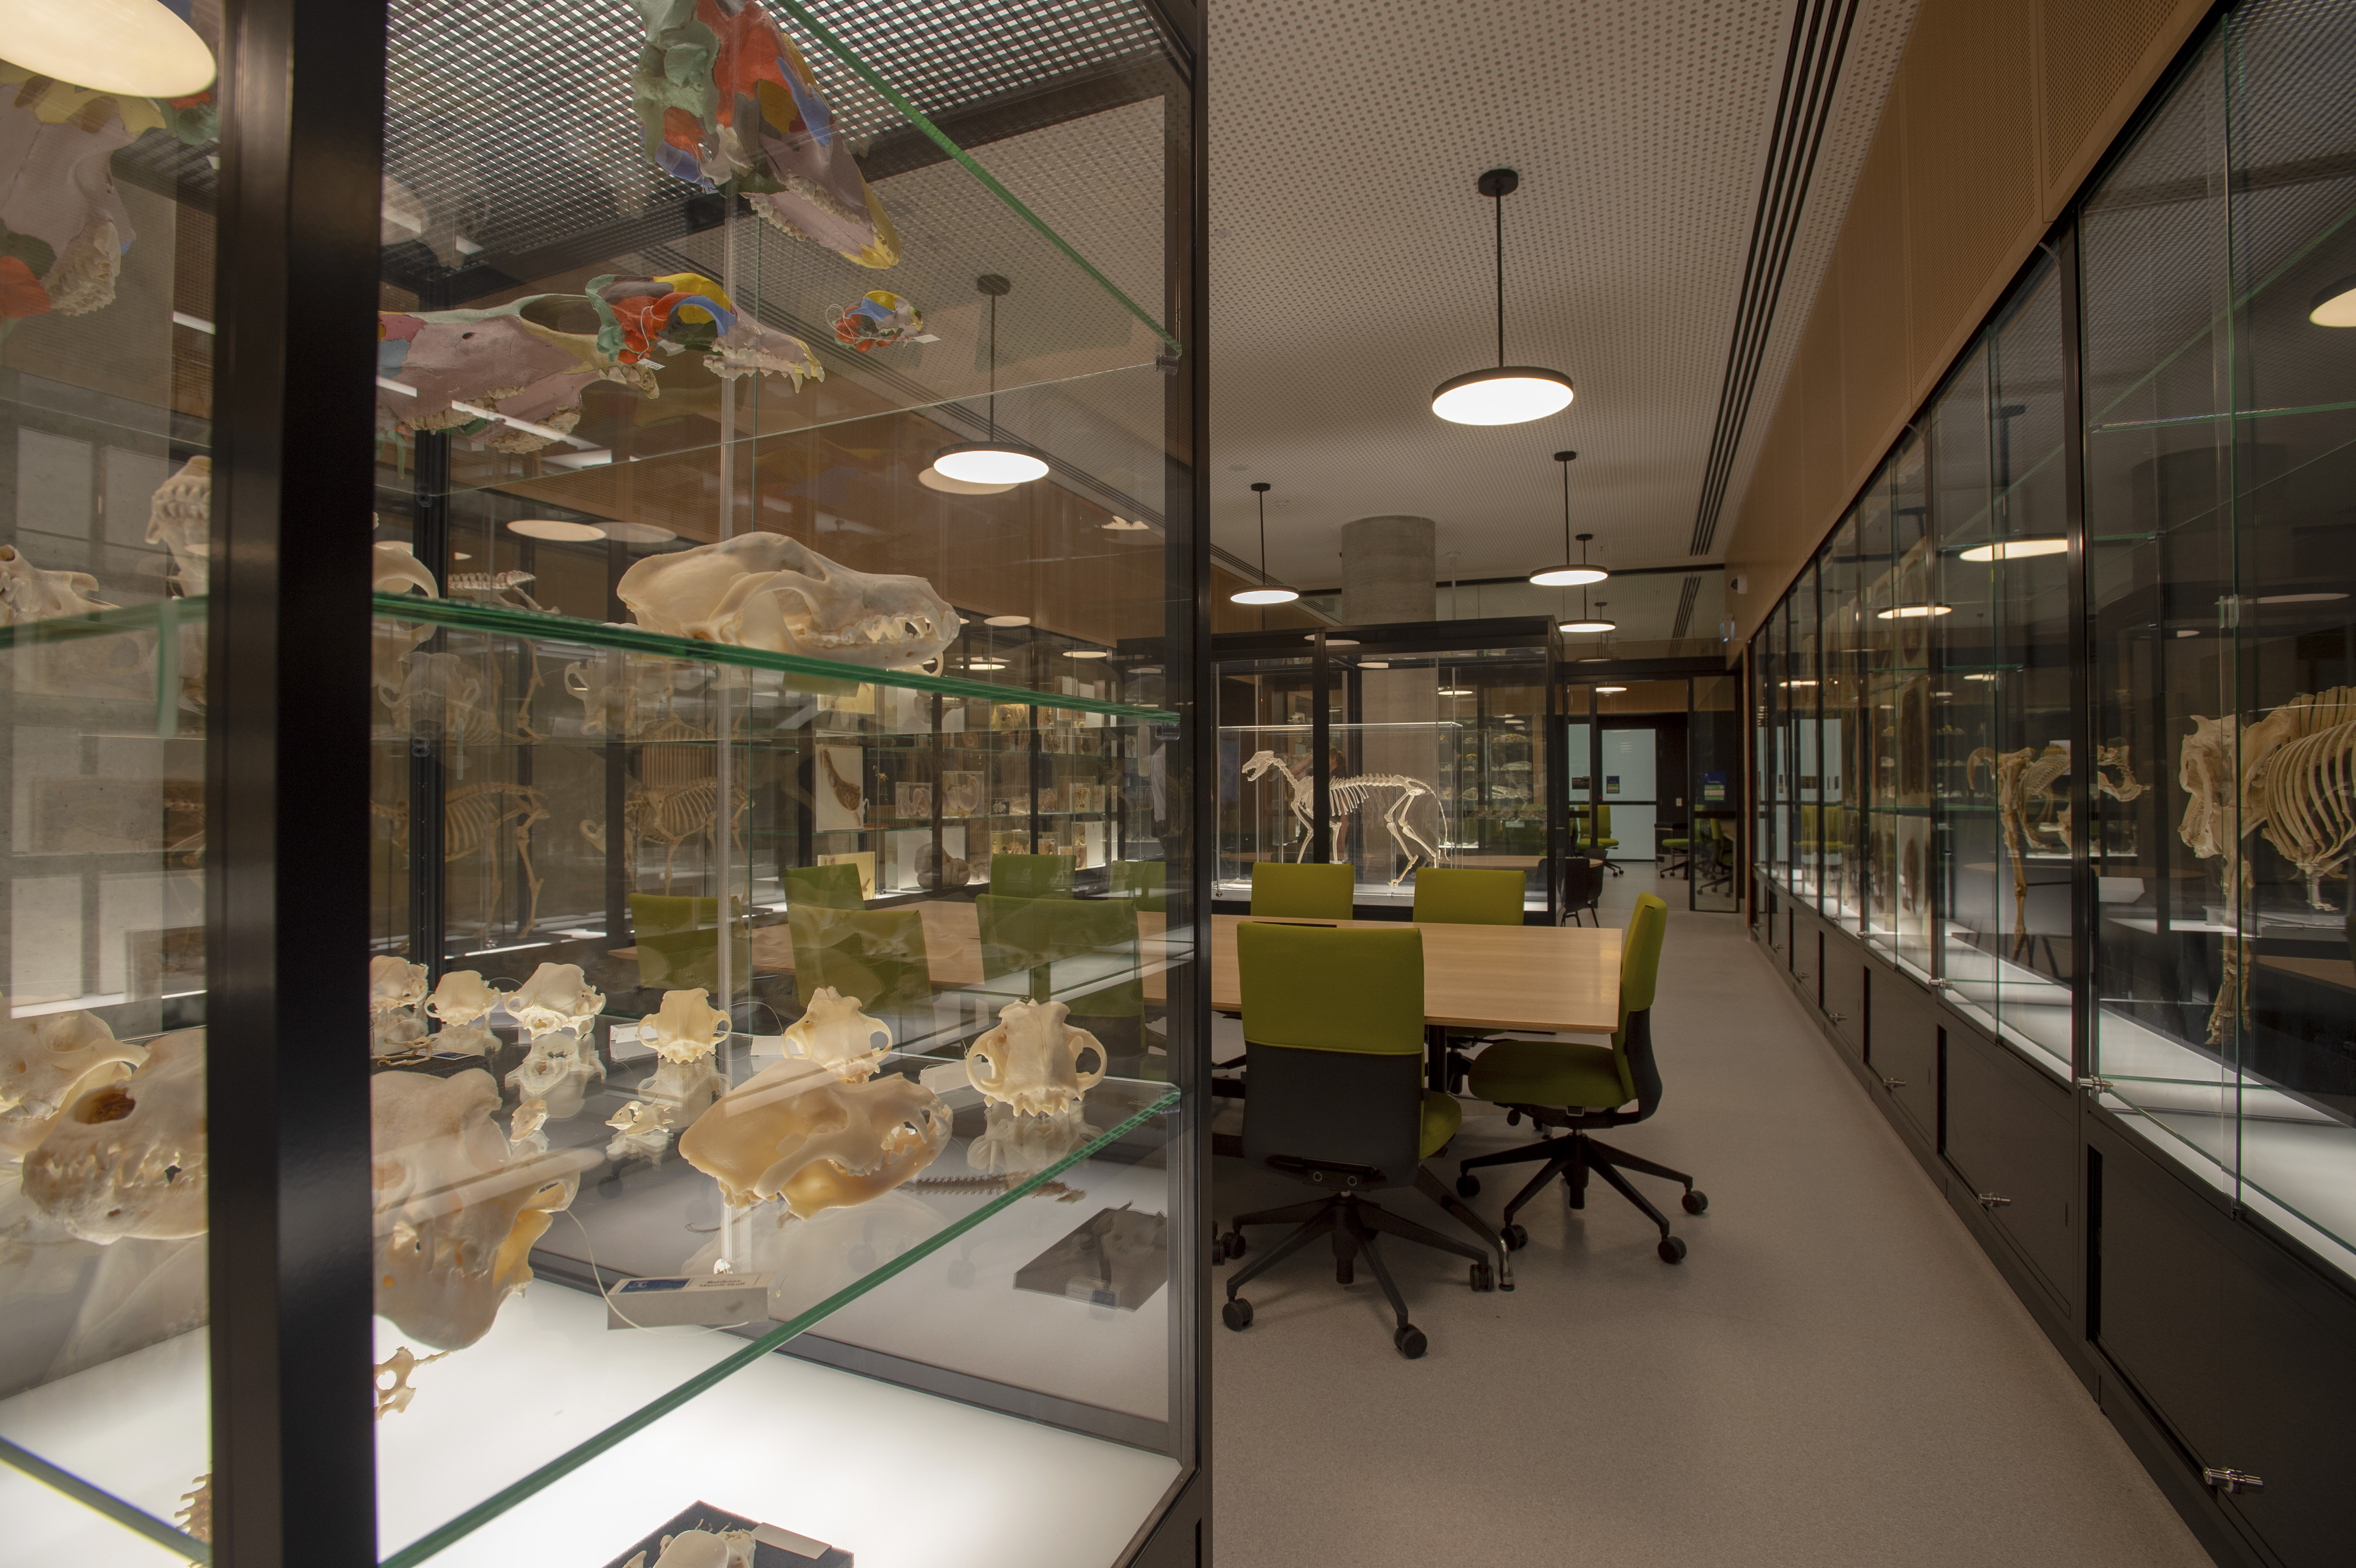 An enclosed room displays pieces of animal anatomy with a study table featured in the middle.